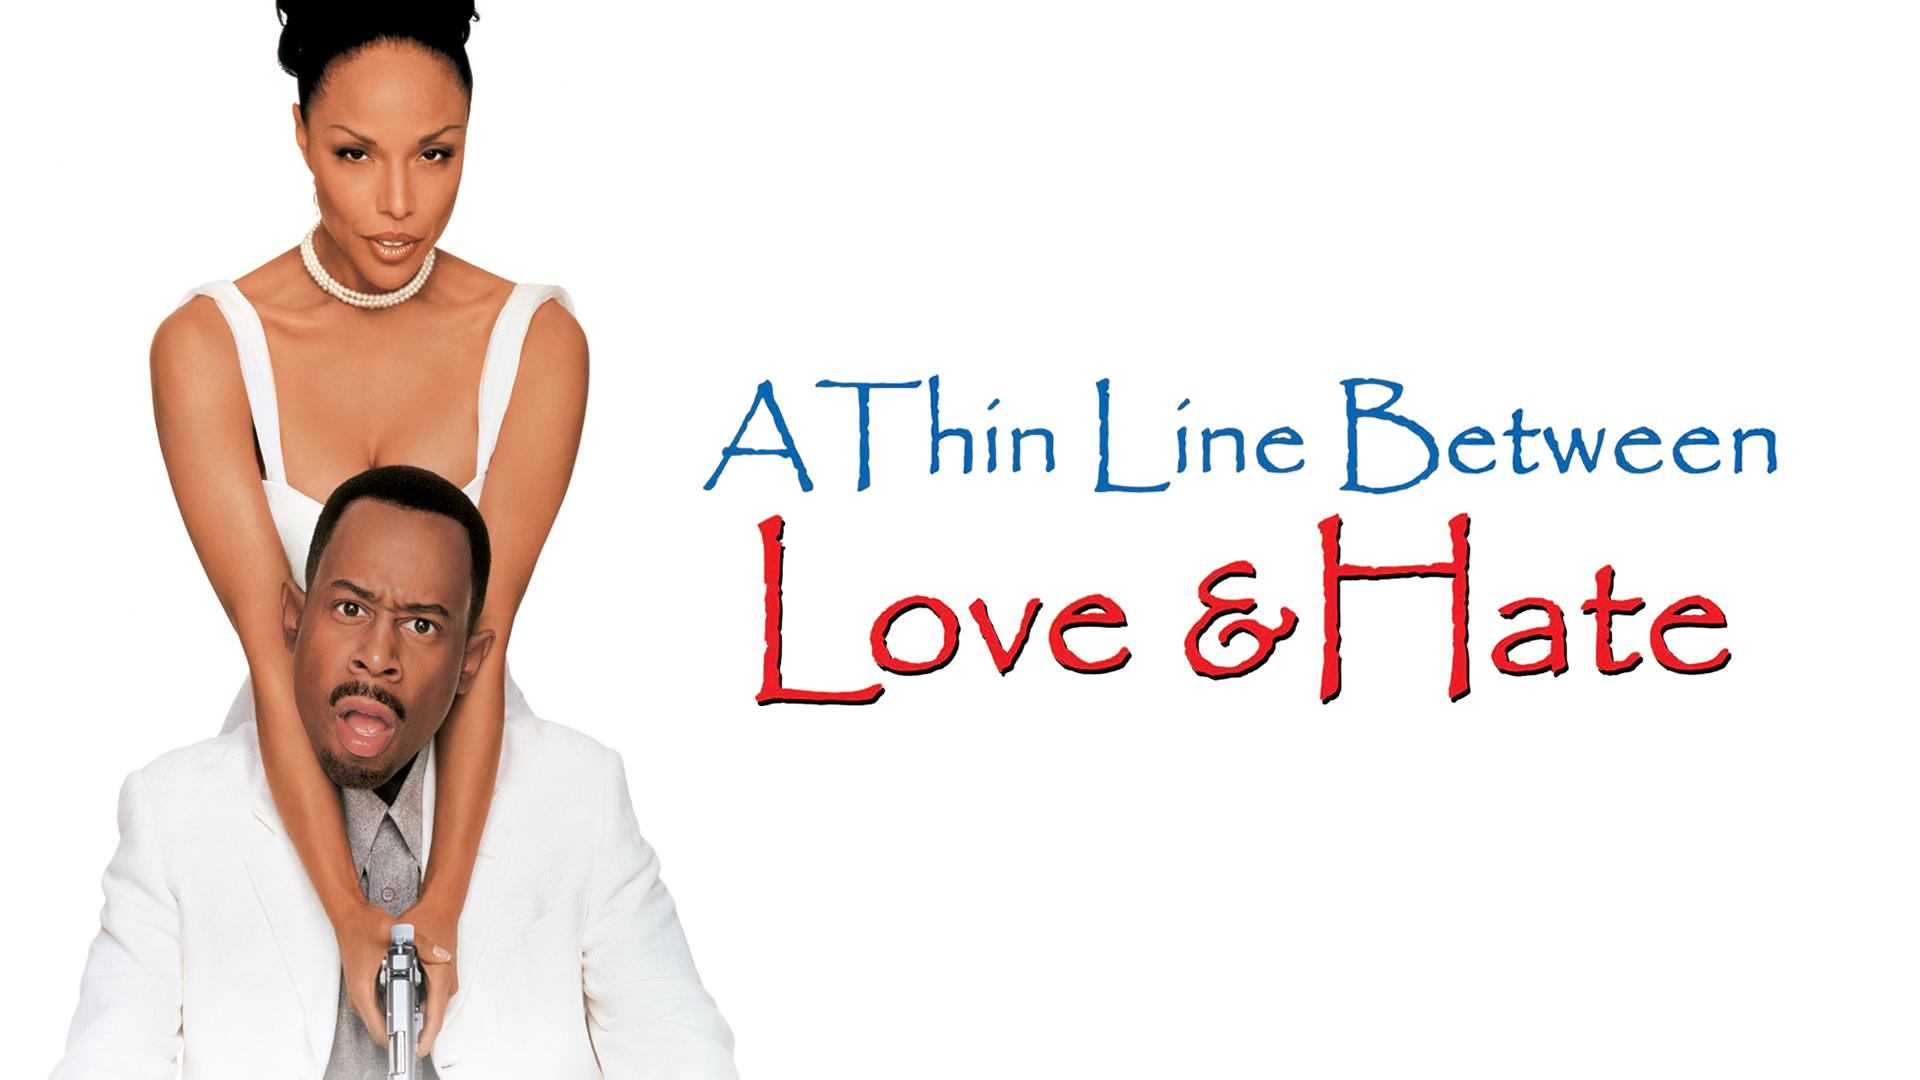 Thin Line Between Love & Hate - New Releases category image